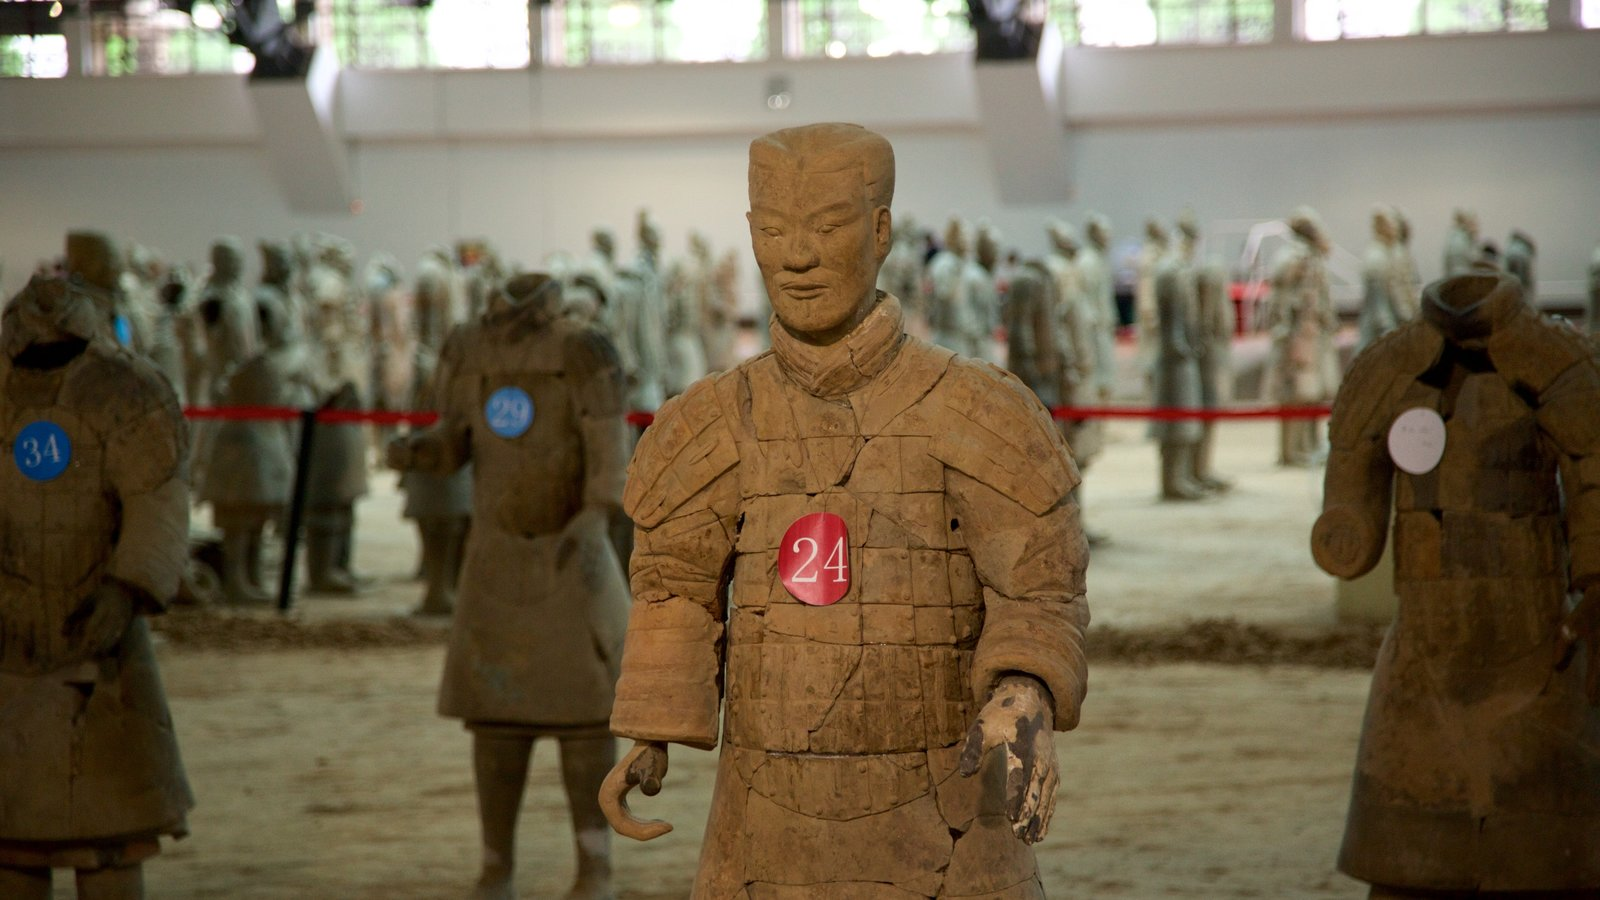 Terracota Army showing interior views and a statue or sculpture